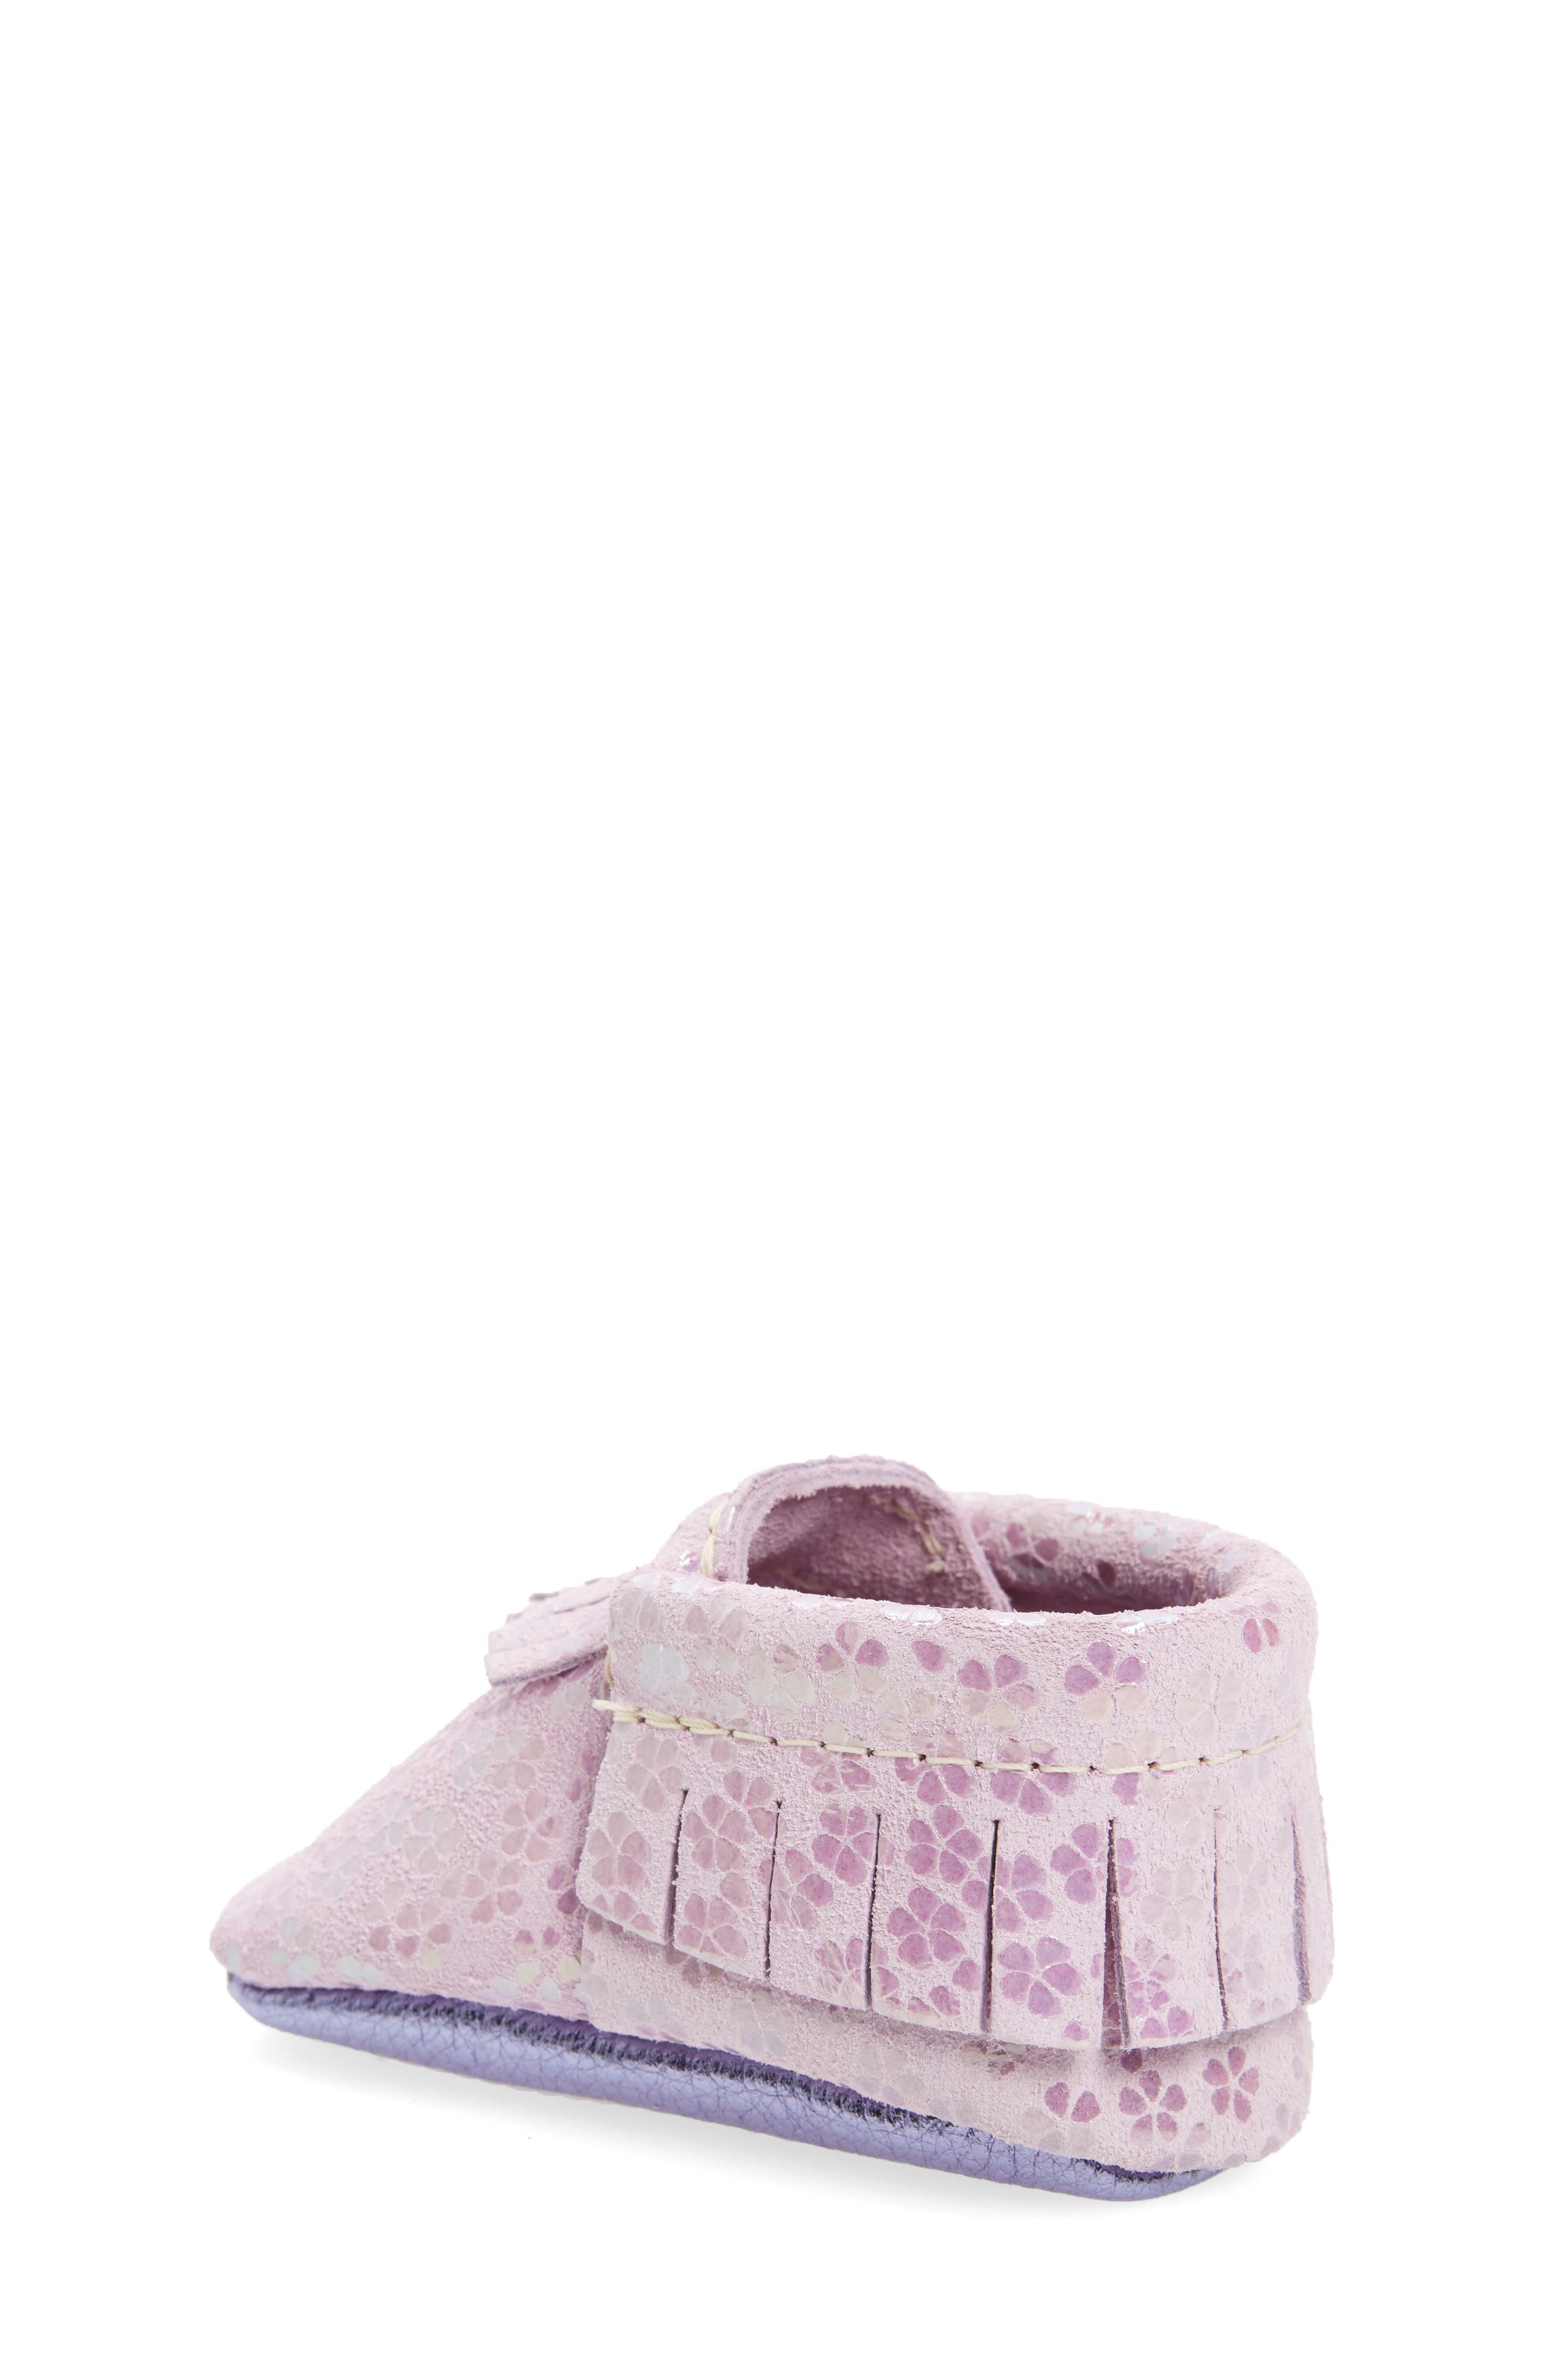 Lilac Blossom Moccasin,                             Alternate thumbnail 2, color,                             508